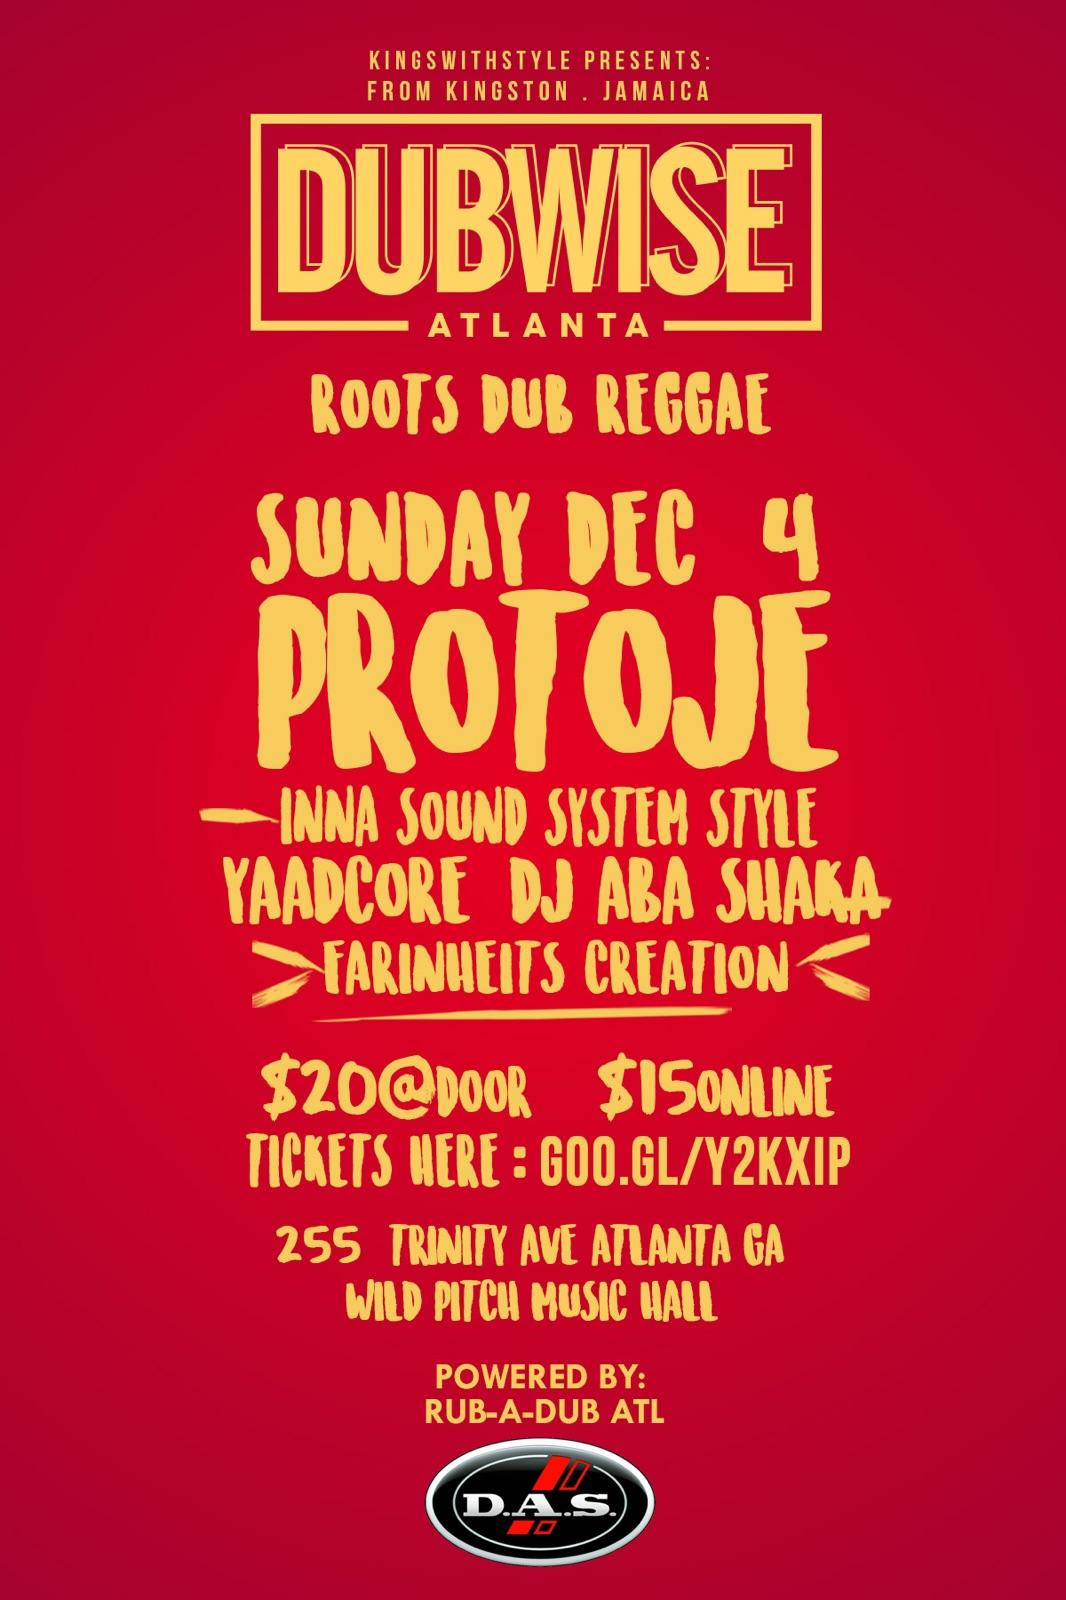 Kings With Style presents: live from Kingston, Jamaica, DUBWISE Atlanta featuring Yaadcore (#dubwisejamaica) with Protoje performing inna sound system style with support by Farinheits Creation and Aba Shaka. Powered by #rubadubatl. Sound System provided by D.A.S. Audio. $20 at the Door / $15 Online. Doors 8pm-12am.